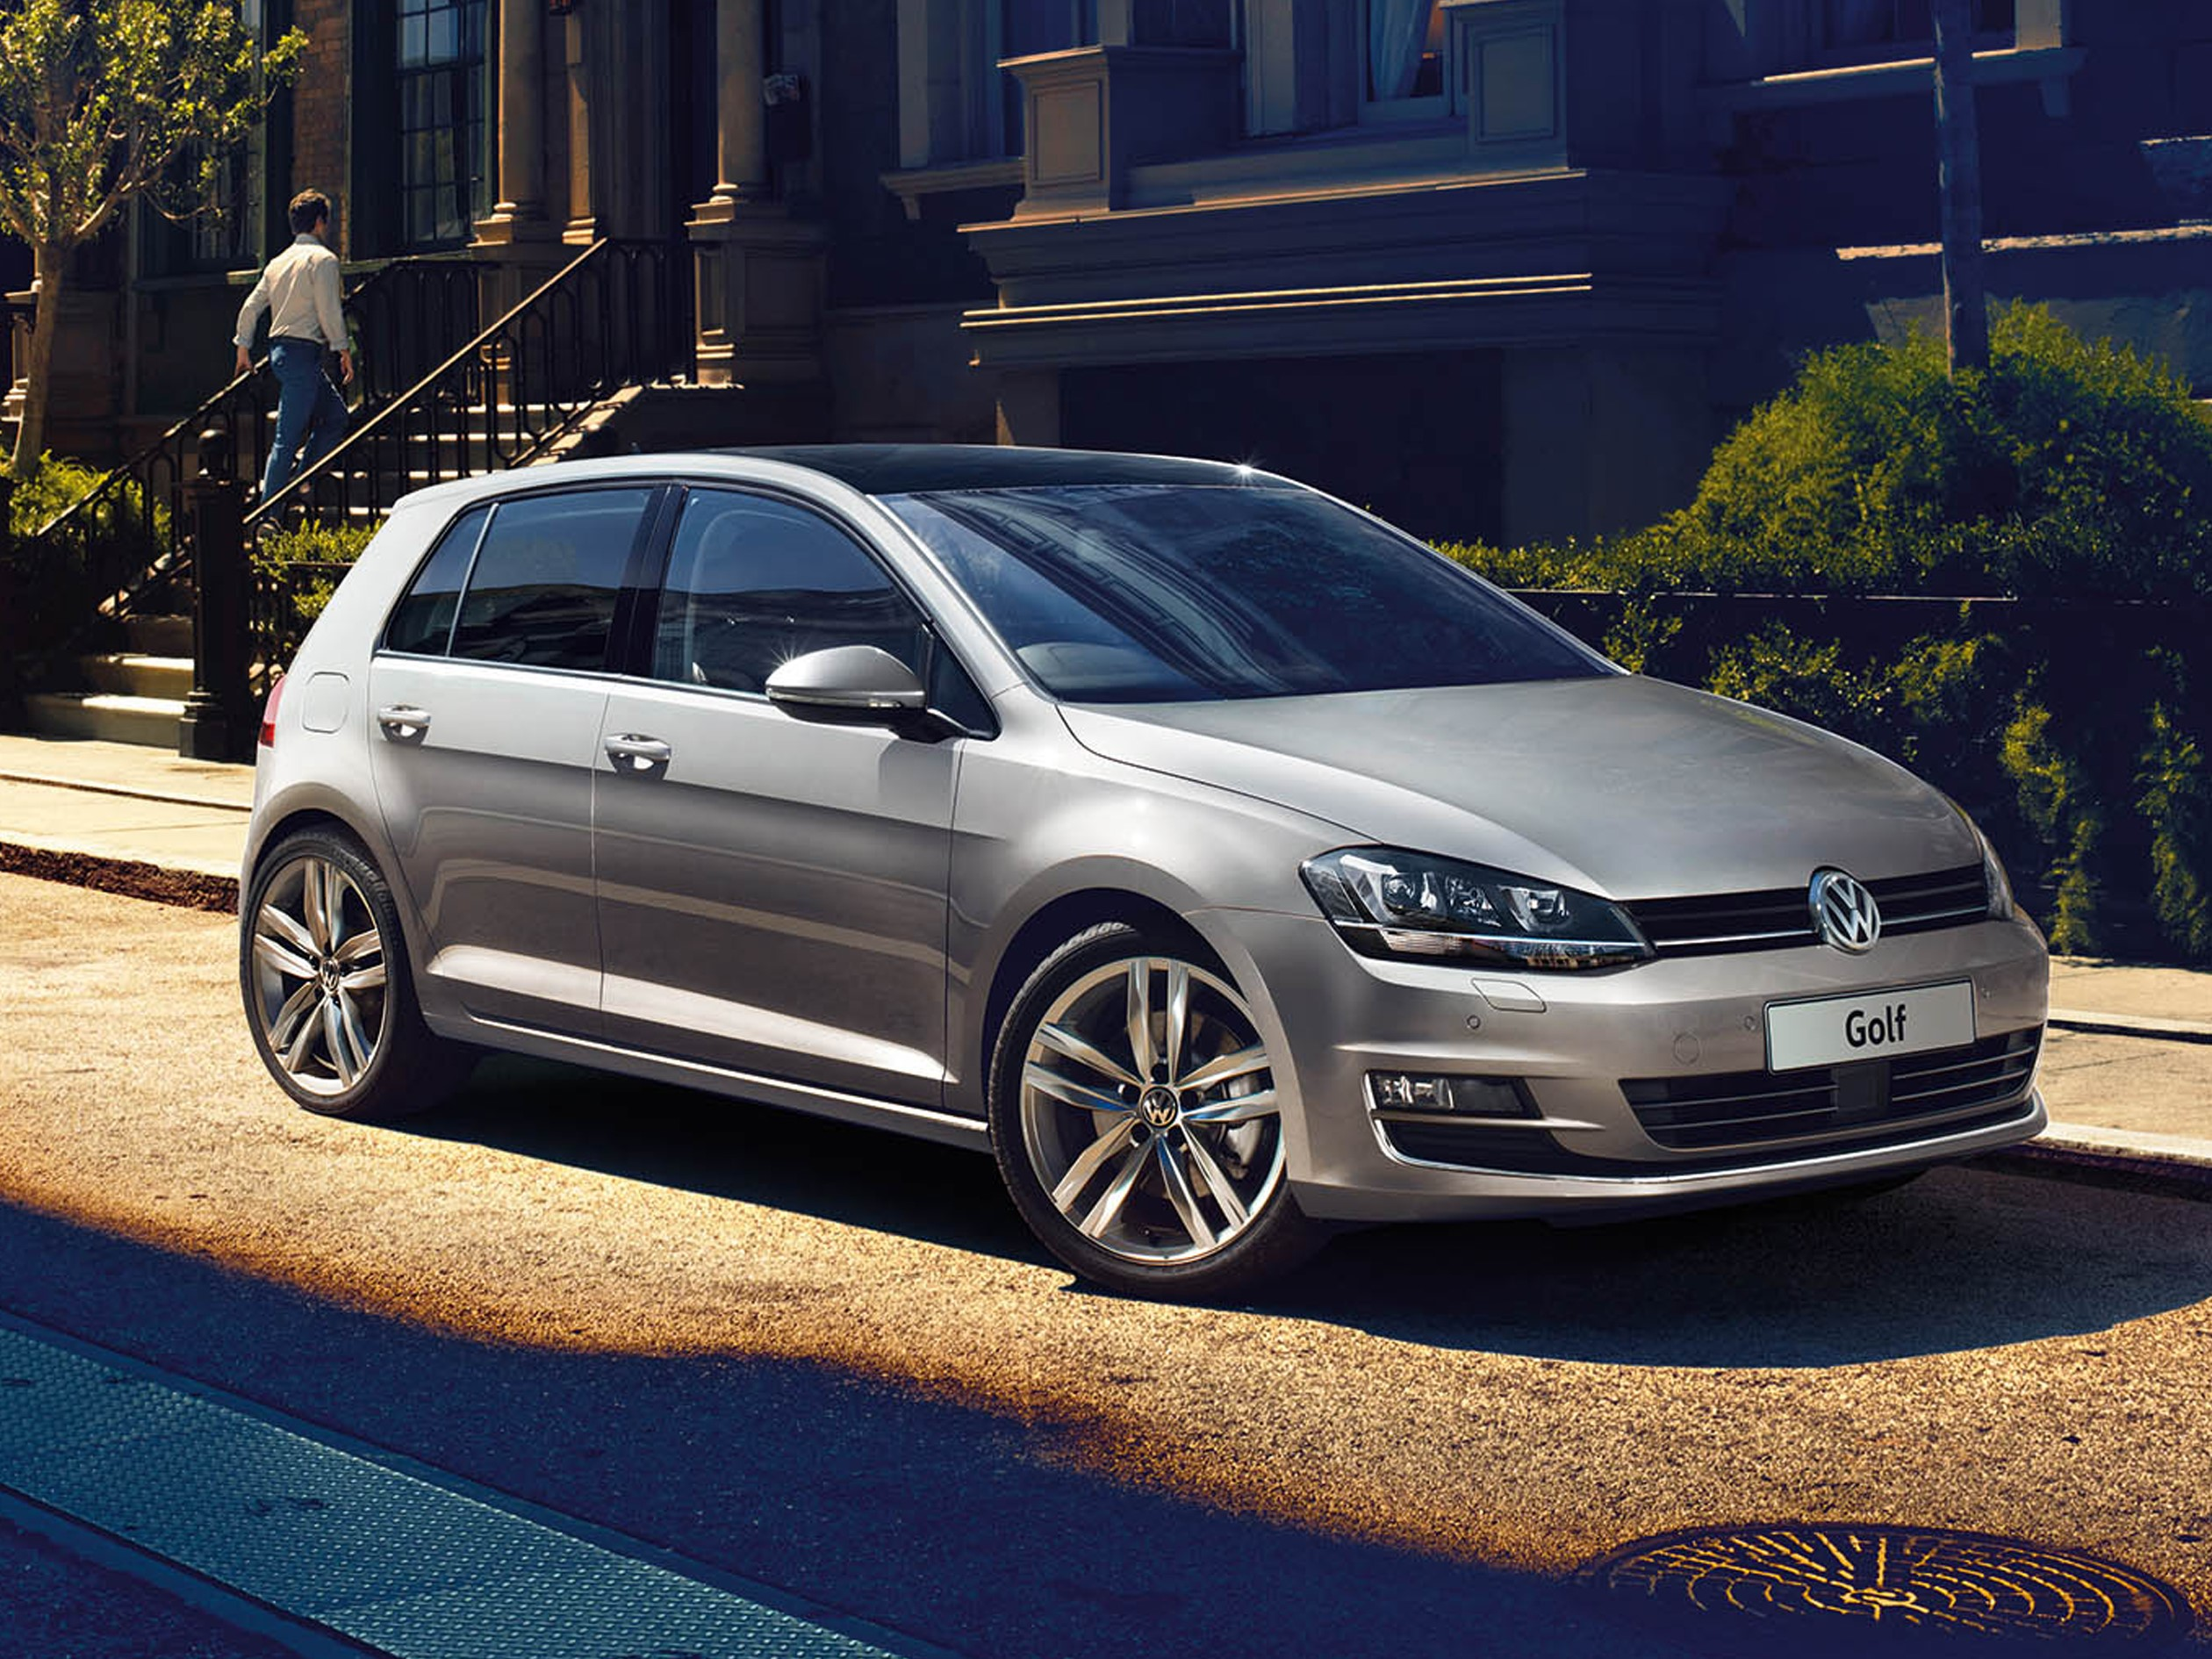 Vw Golf Among The Range Of Upgrades